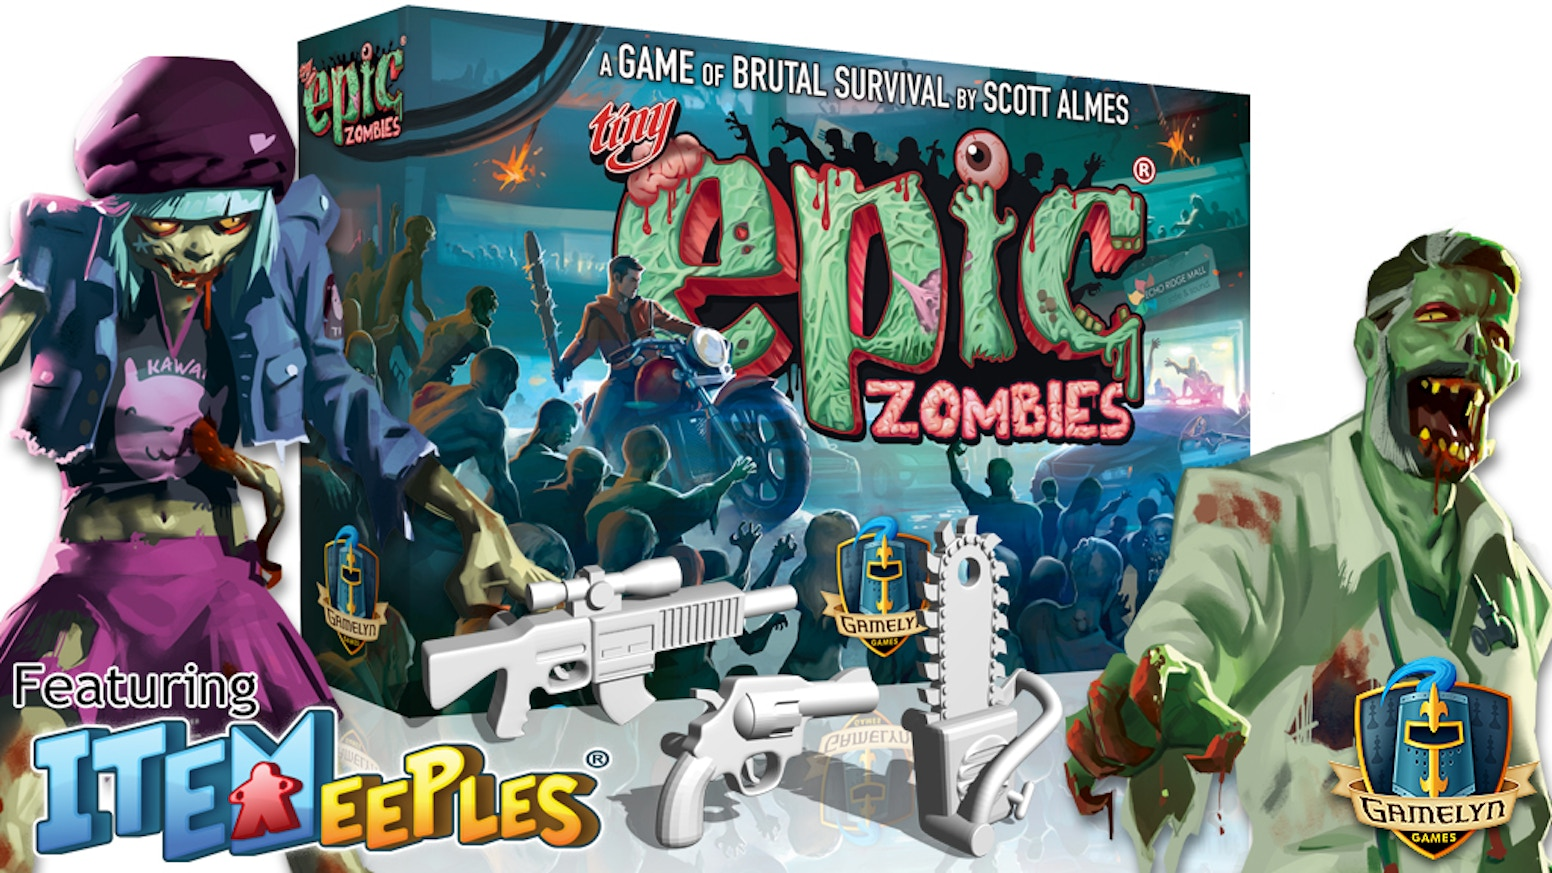 Play as hopeful survivors, or the Zombies, in this 1-5 player game featuring competitive and cooperative modes, and.. more ITEMeeples®!